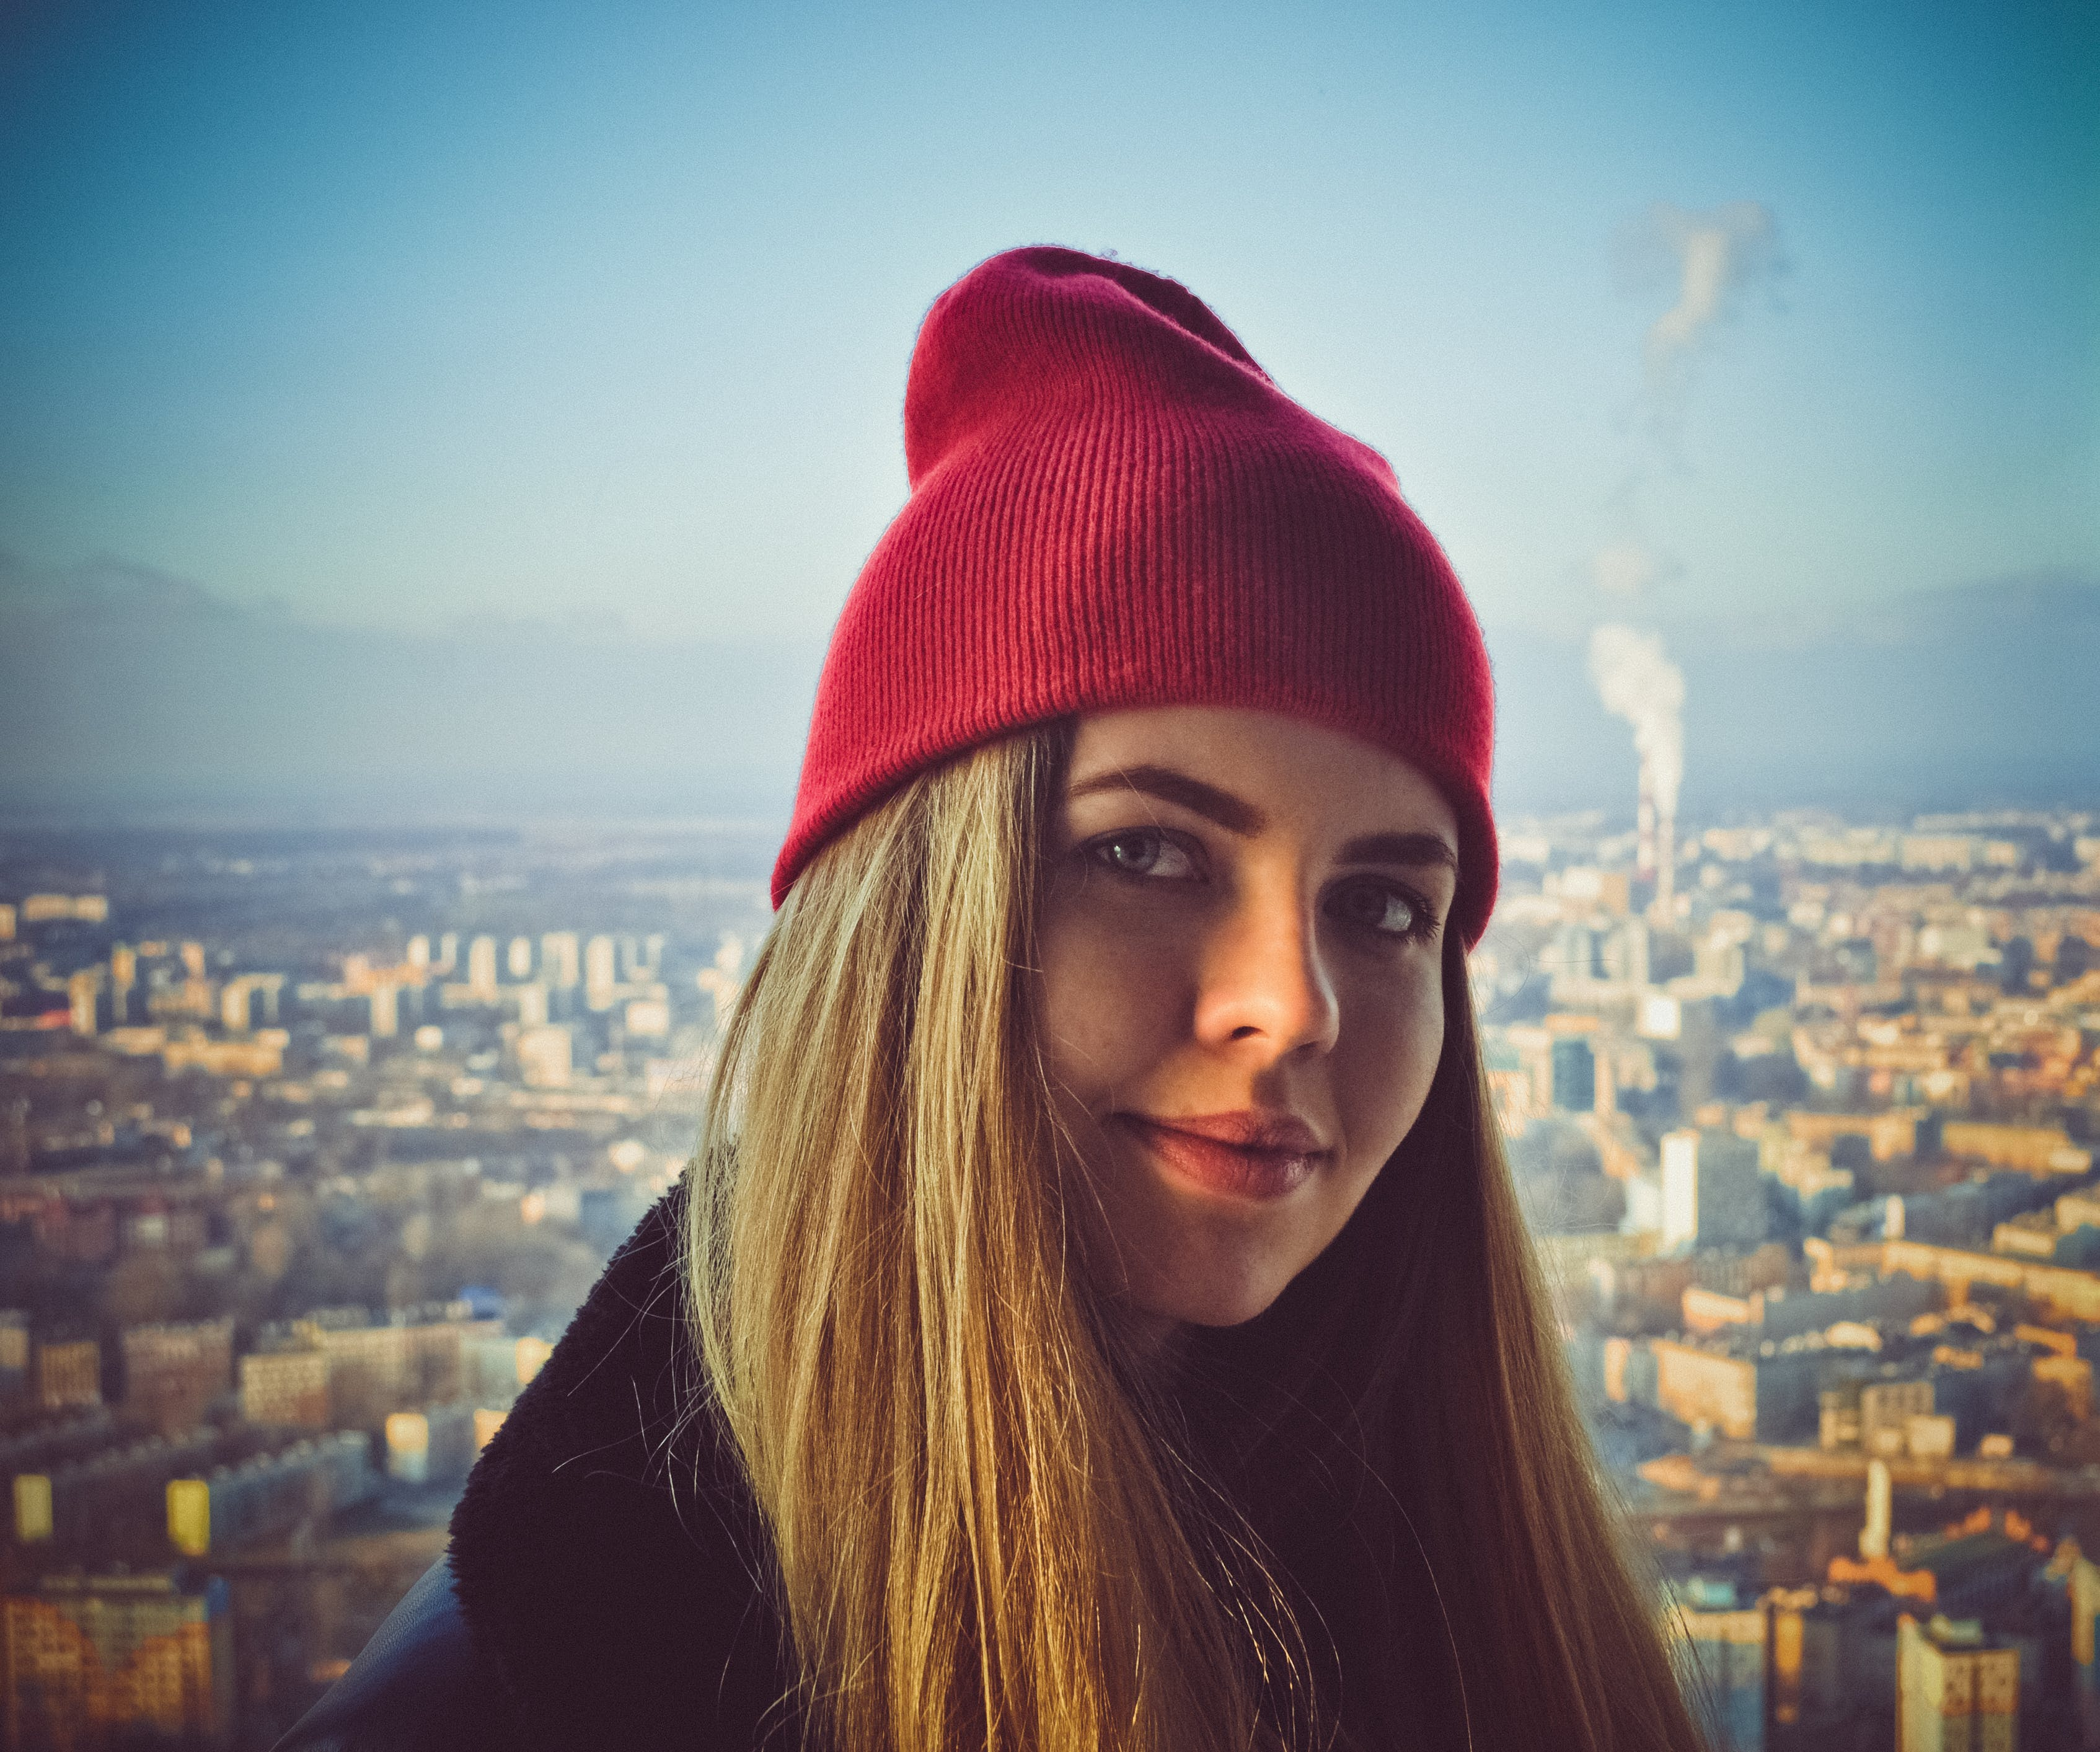 Woman Wearing Red Beanie